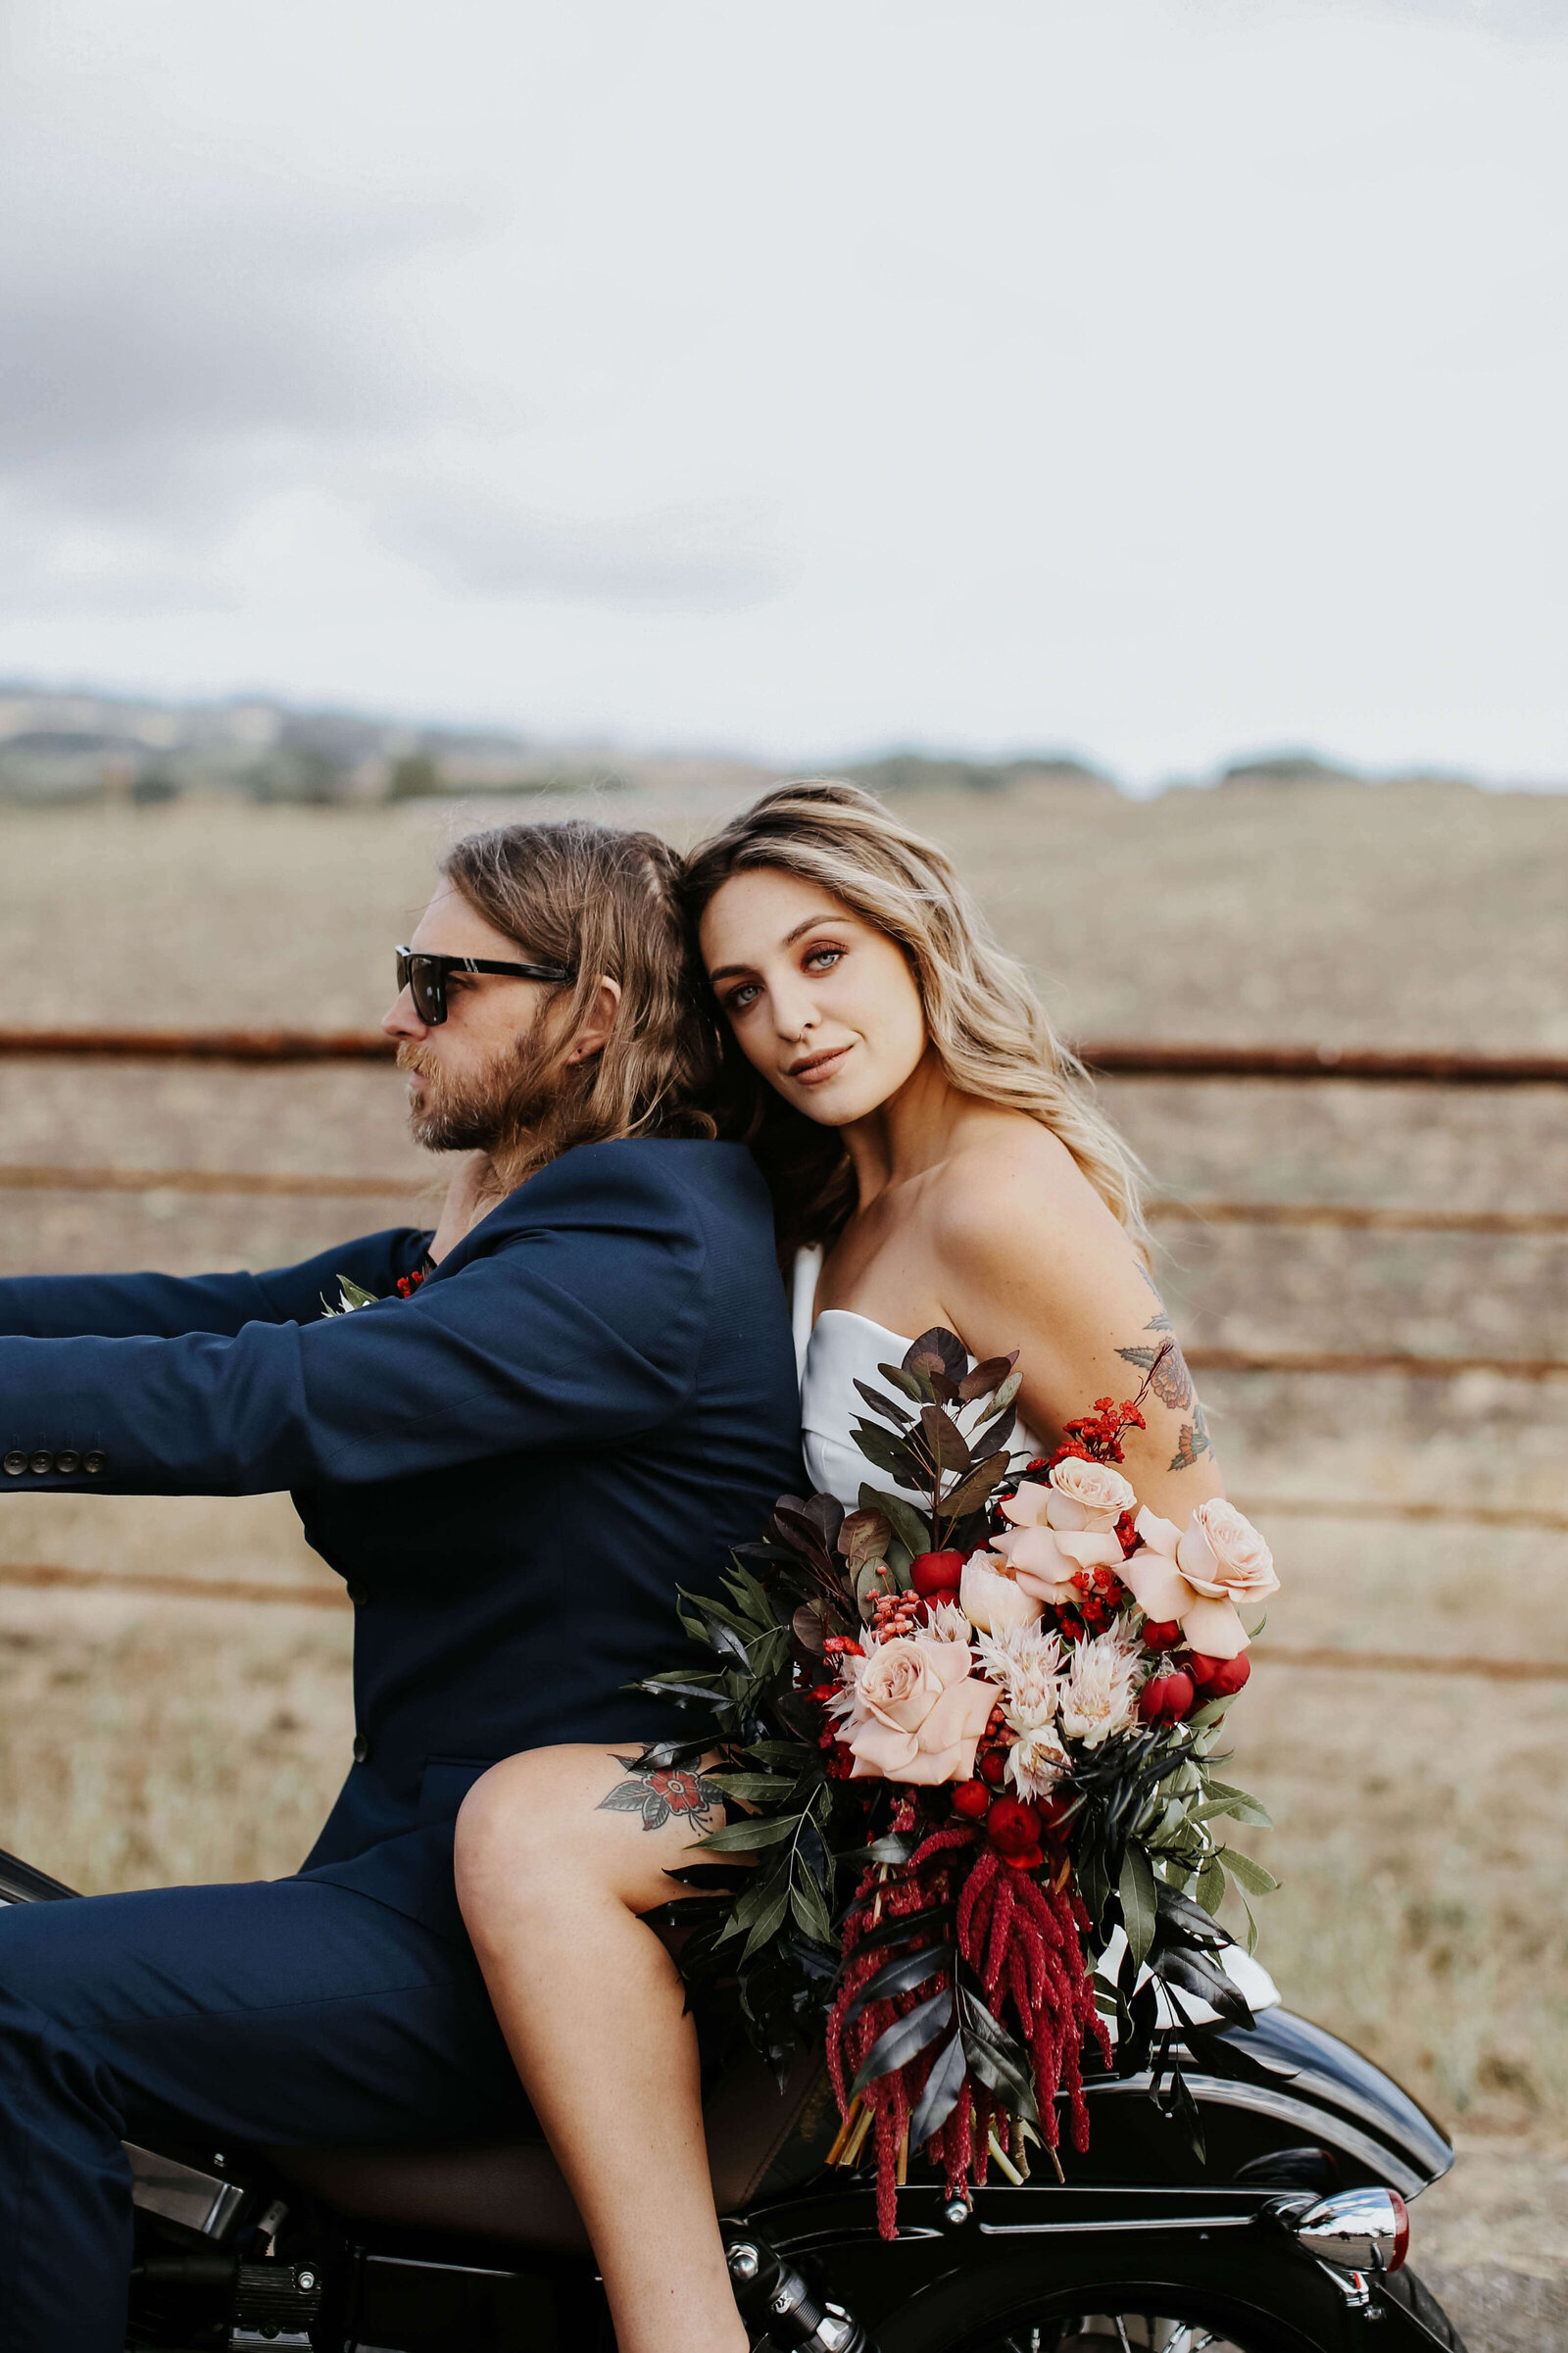 Penngrove-california-elopement-modern-bohemian-sonoma-county-elopement-events-by-gianna-somona-wedding-planner-2